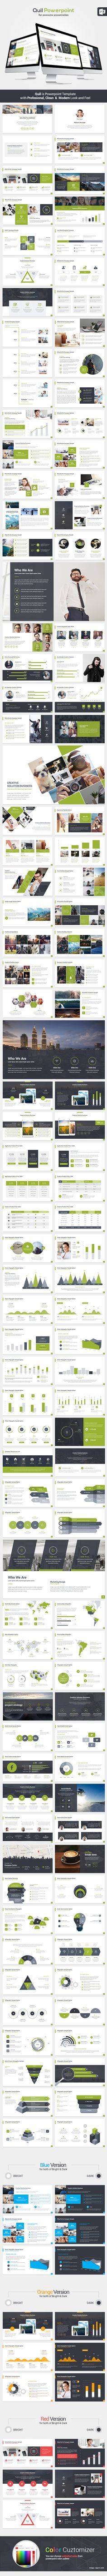 Quil Powerpoint Template